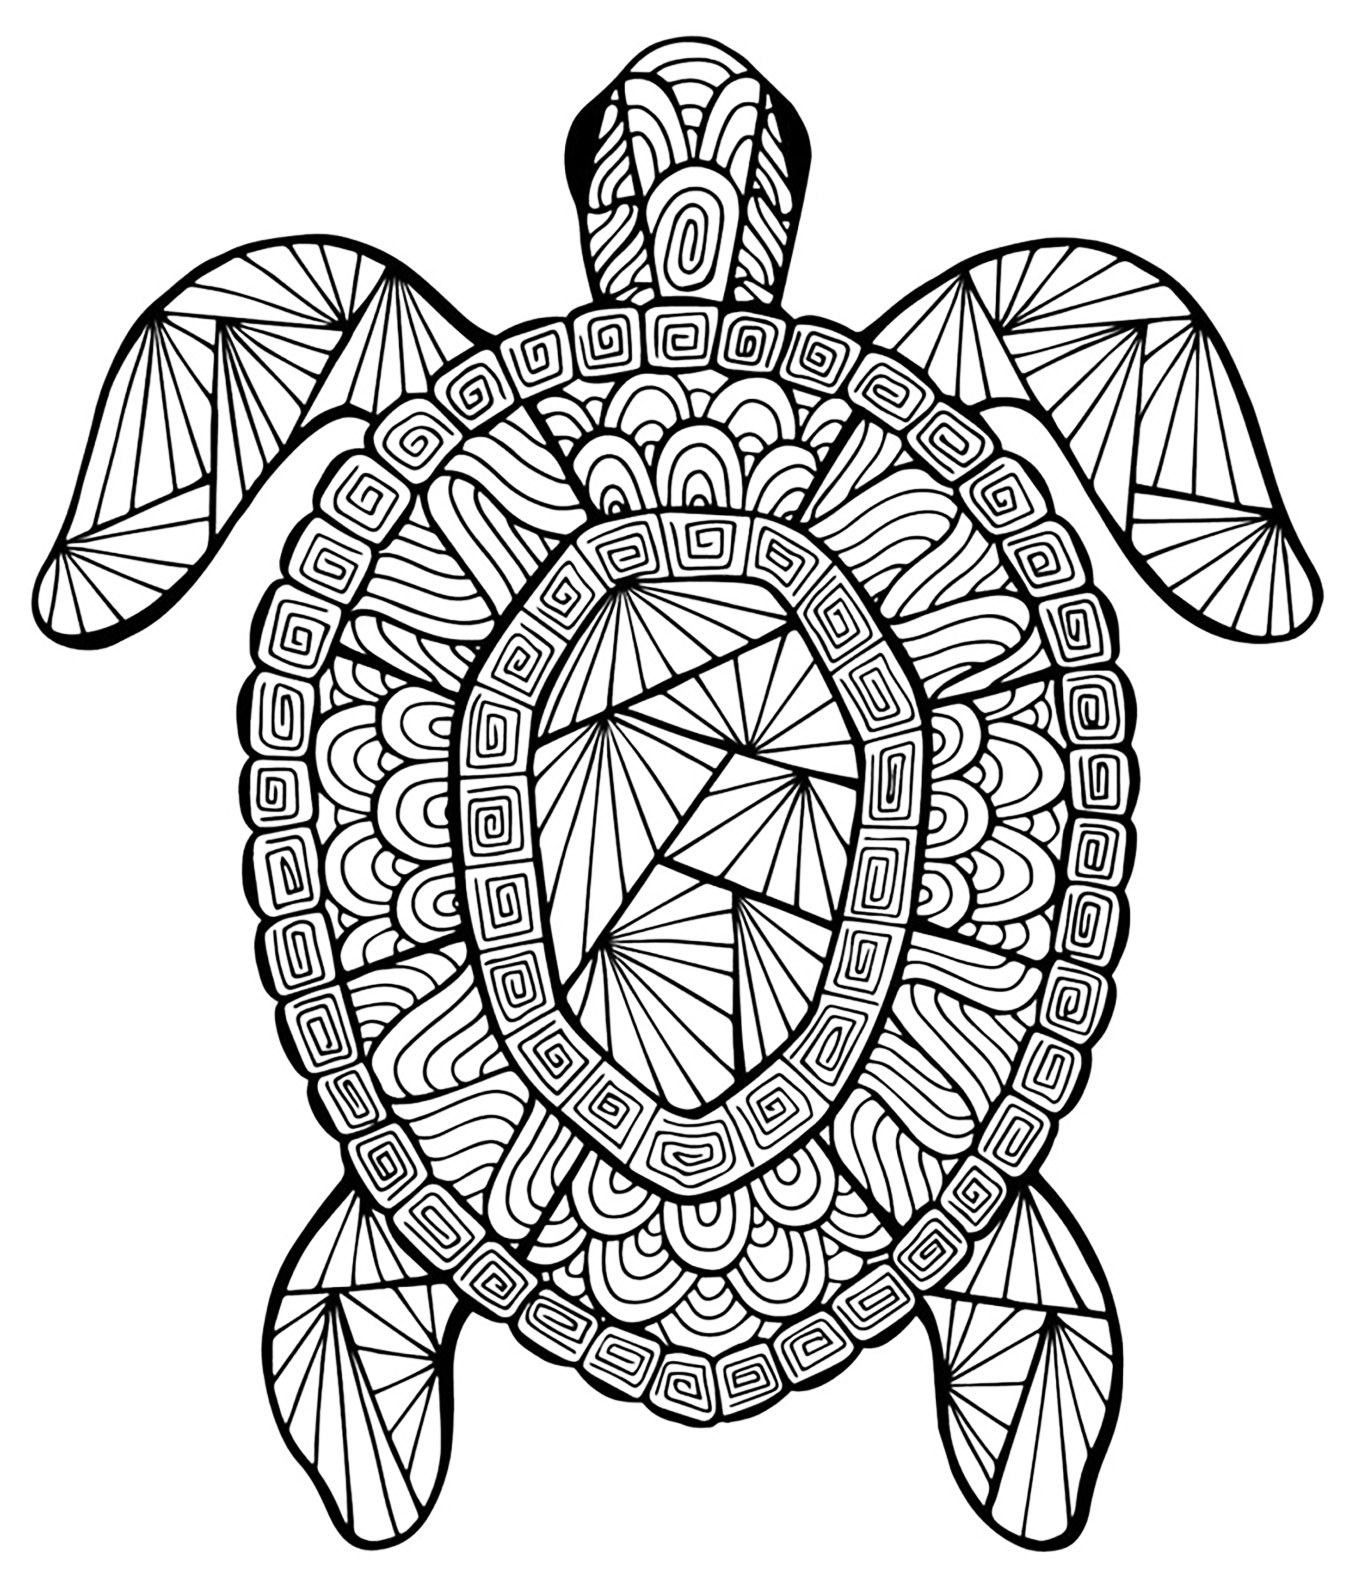 coloring page incredible turtle free to print - Turtle Coloring Pages For Adults